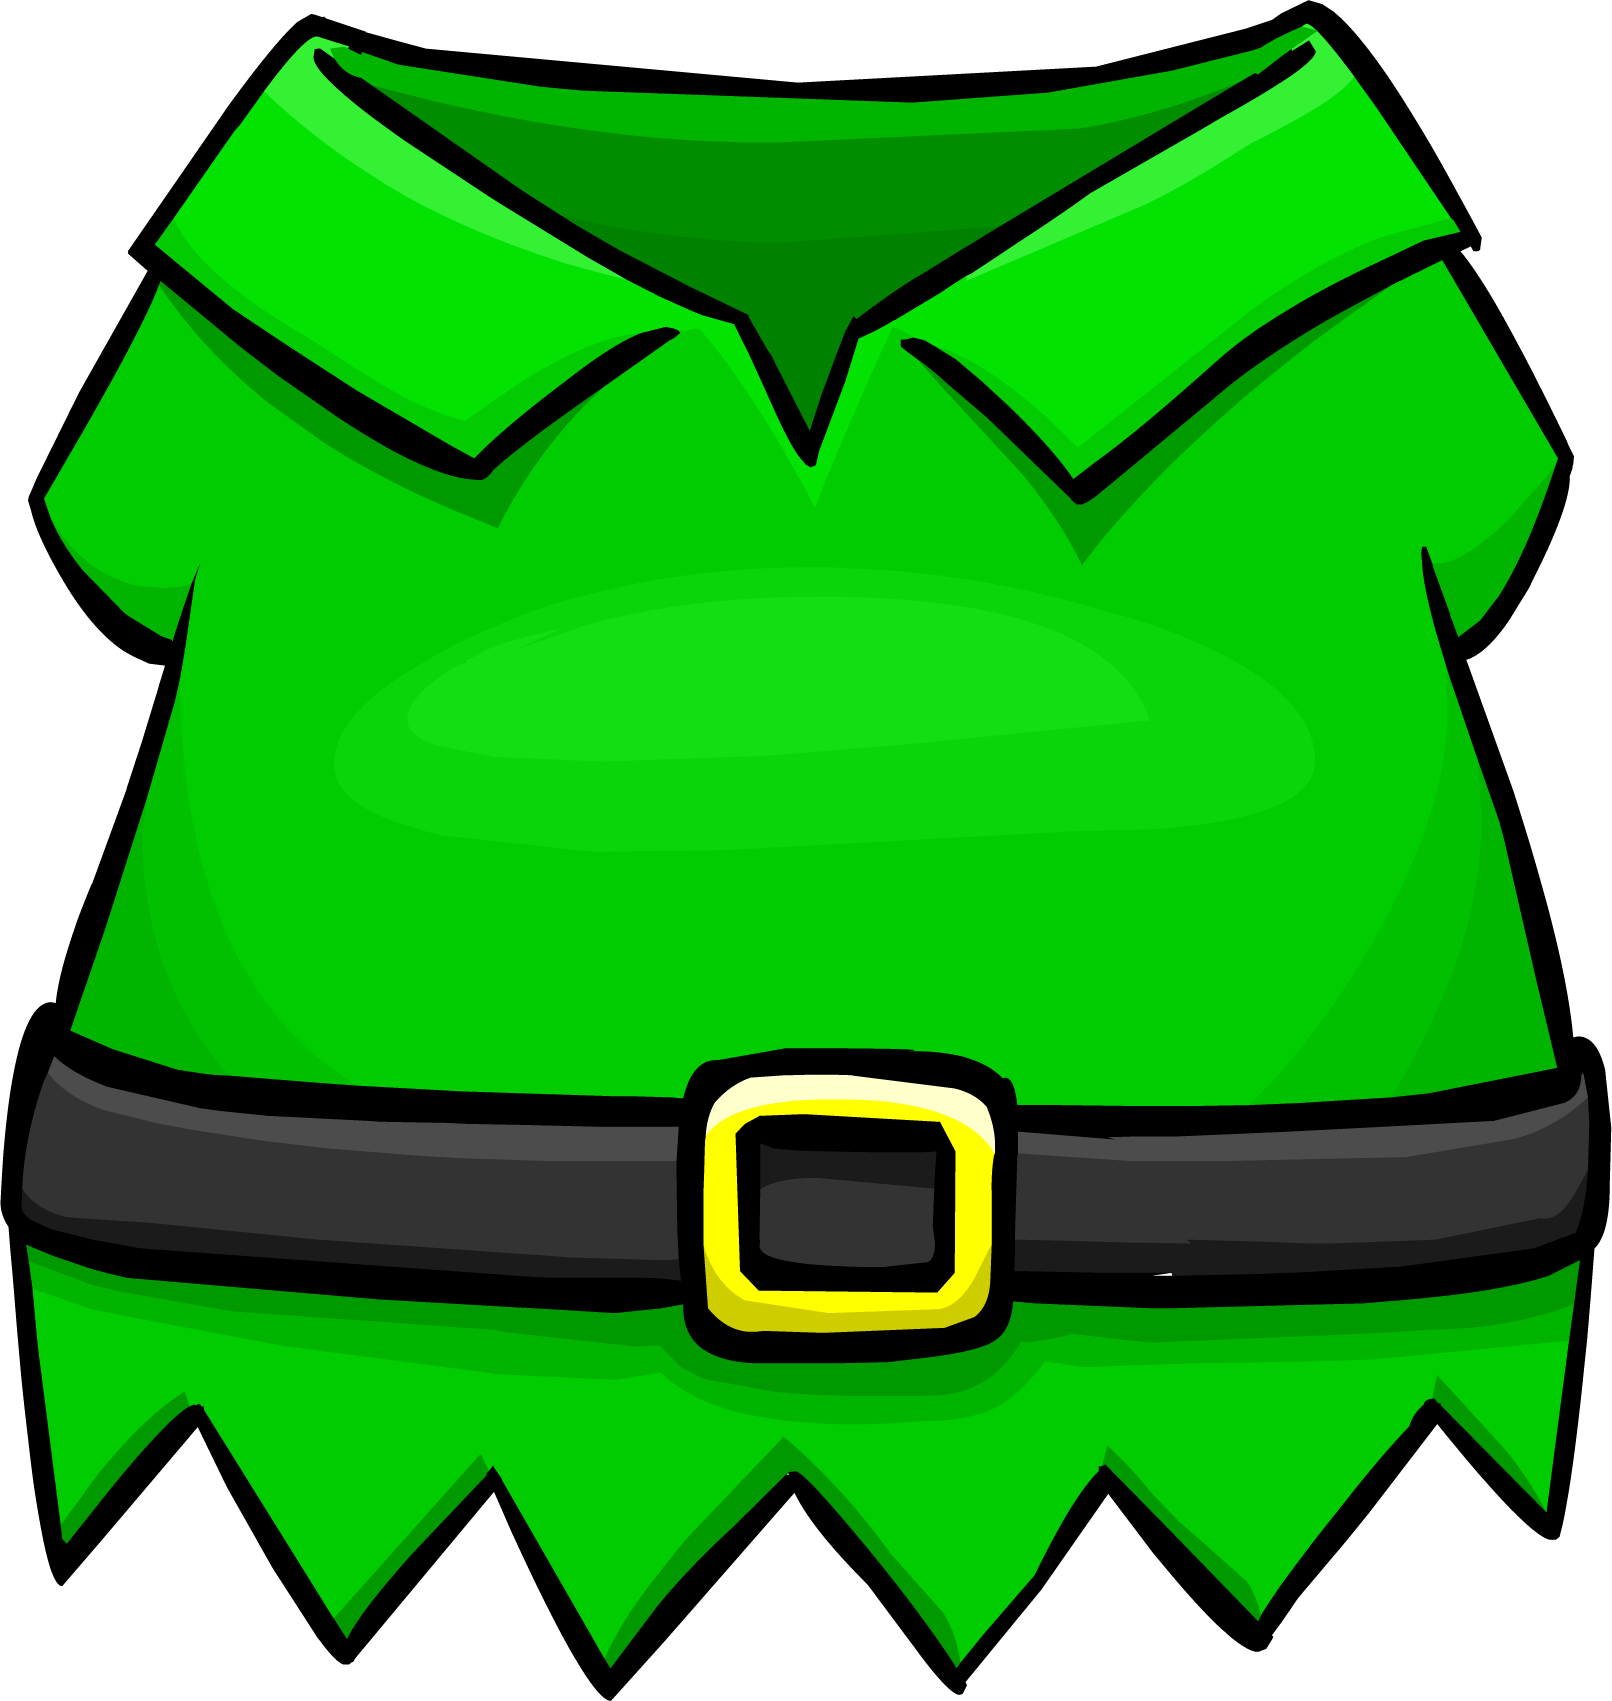 Club clipart card suit. Elf penguin wiki fandom